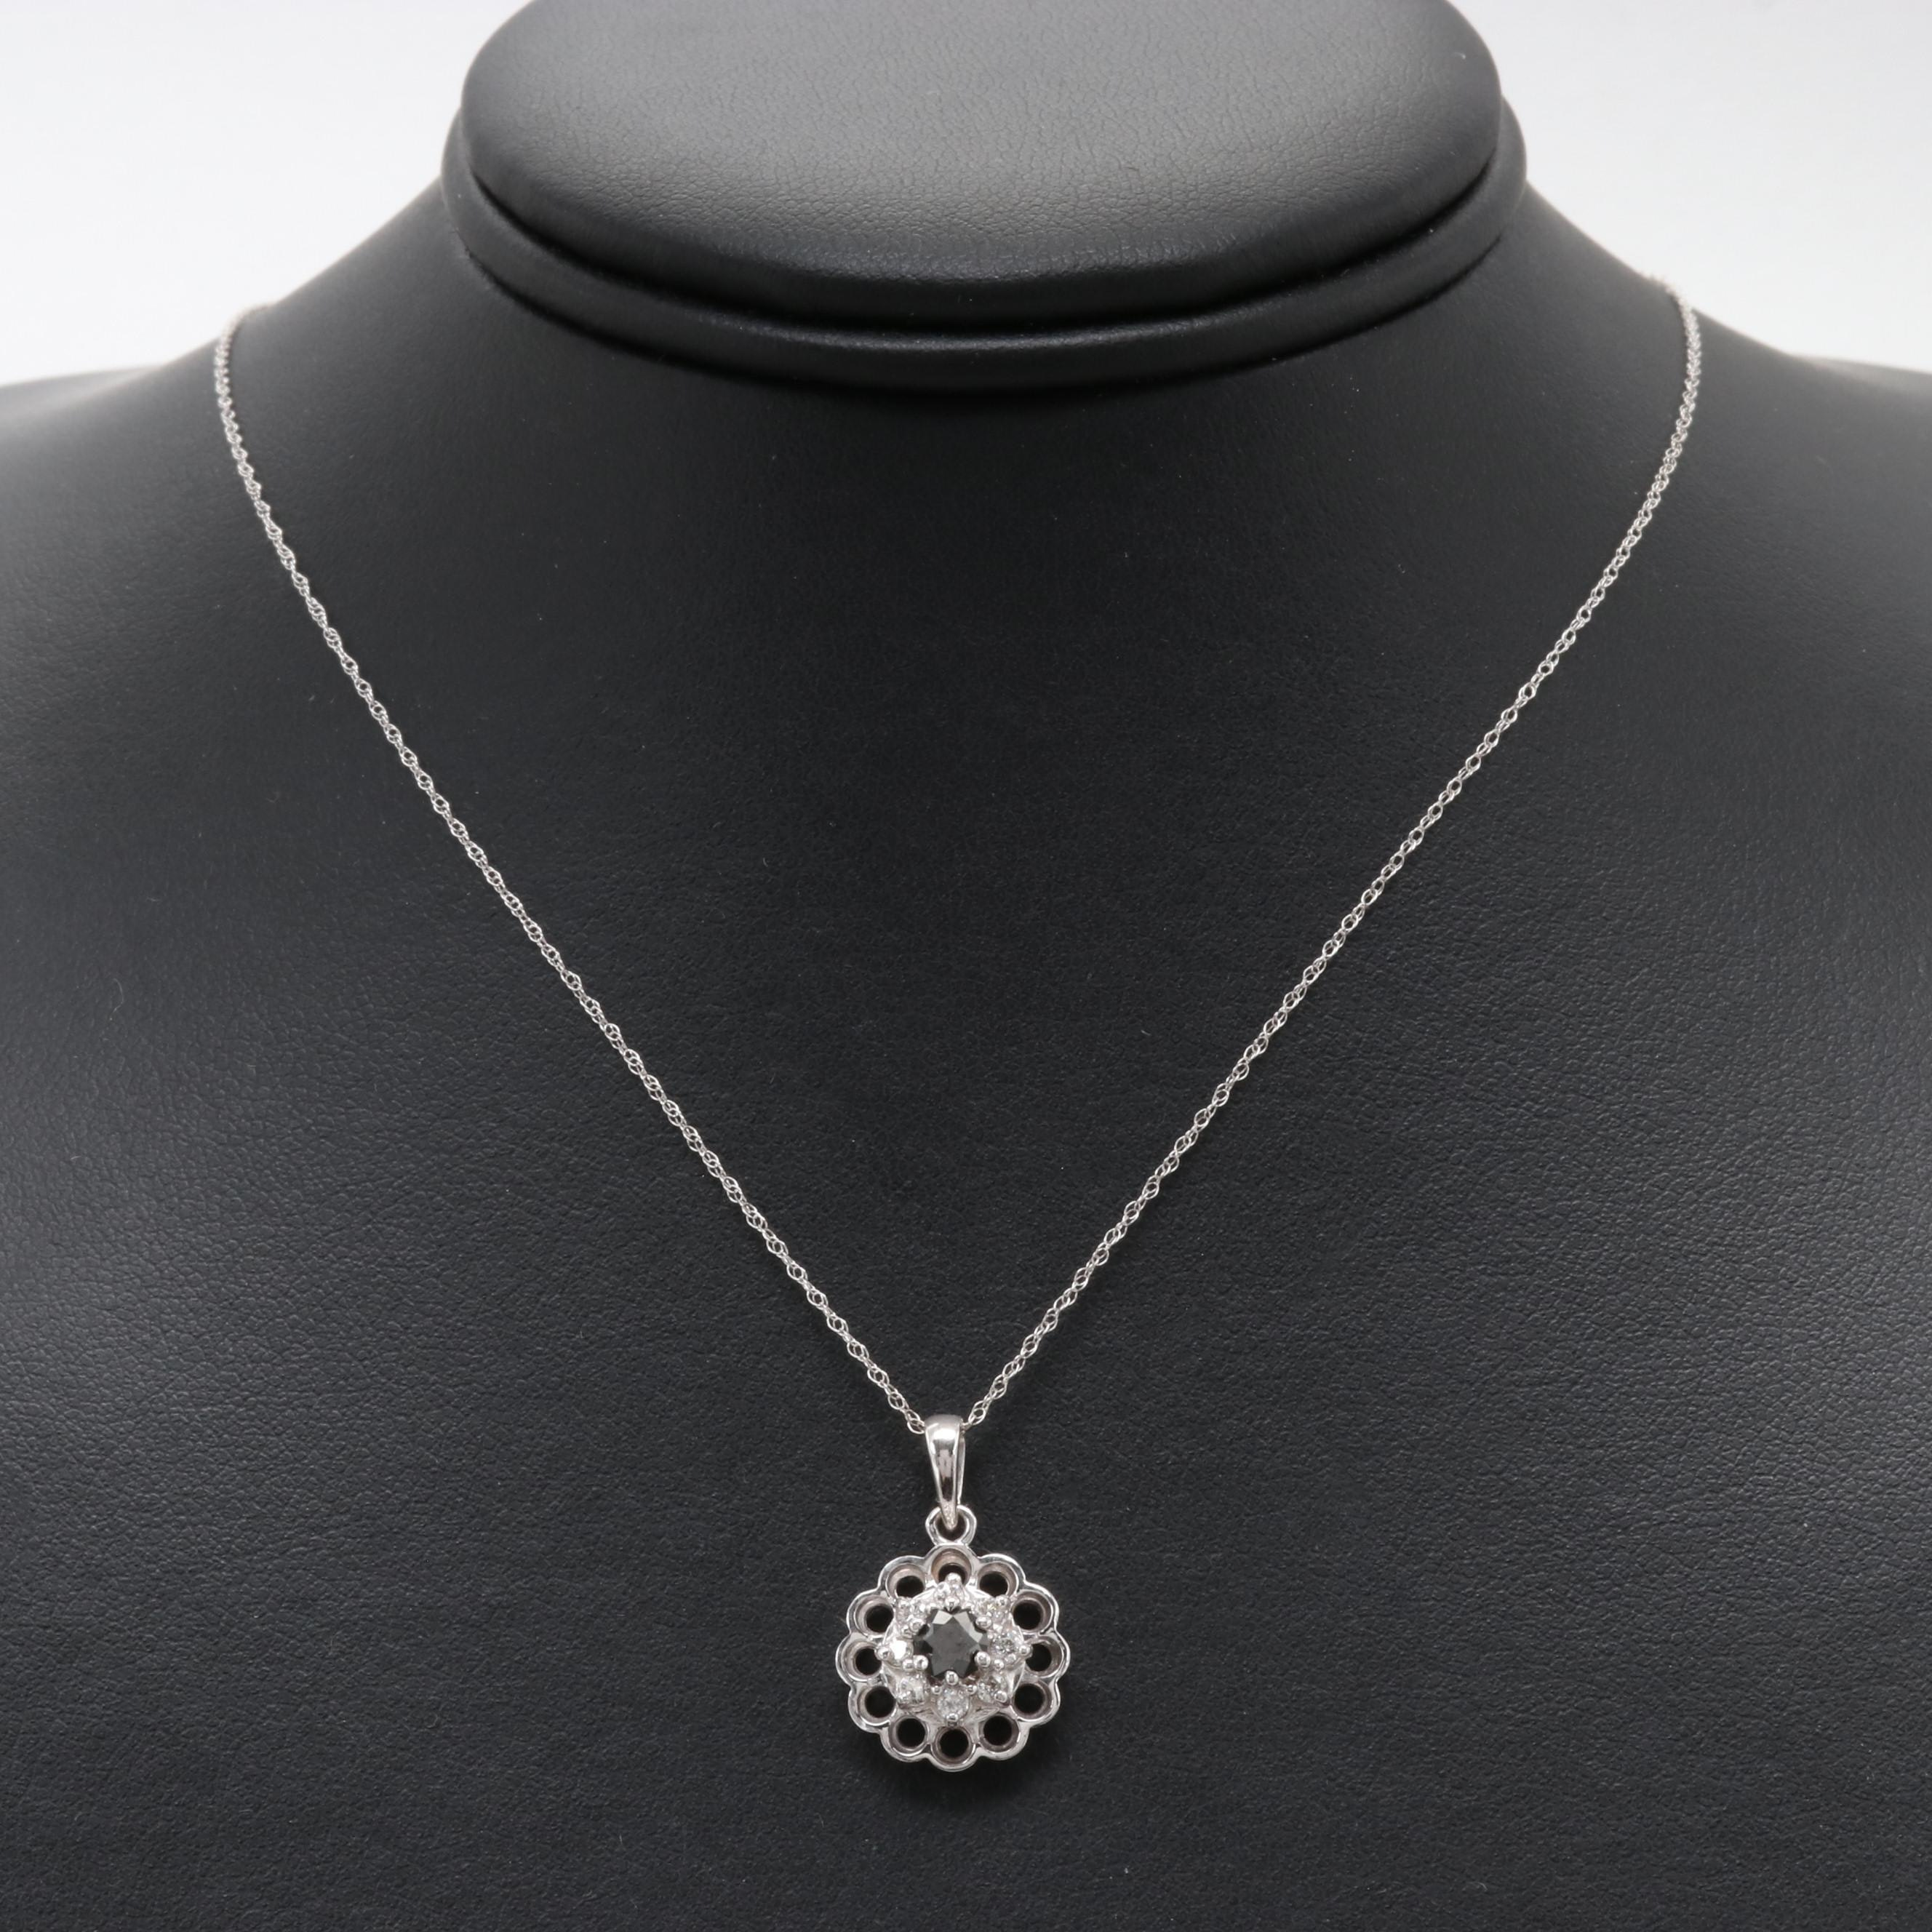 14K White Gold Diamond Necklace Featuring Black Diamond